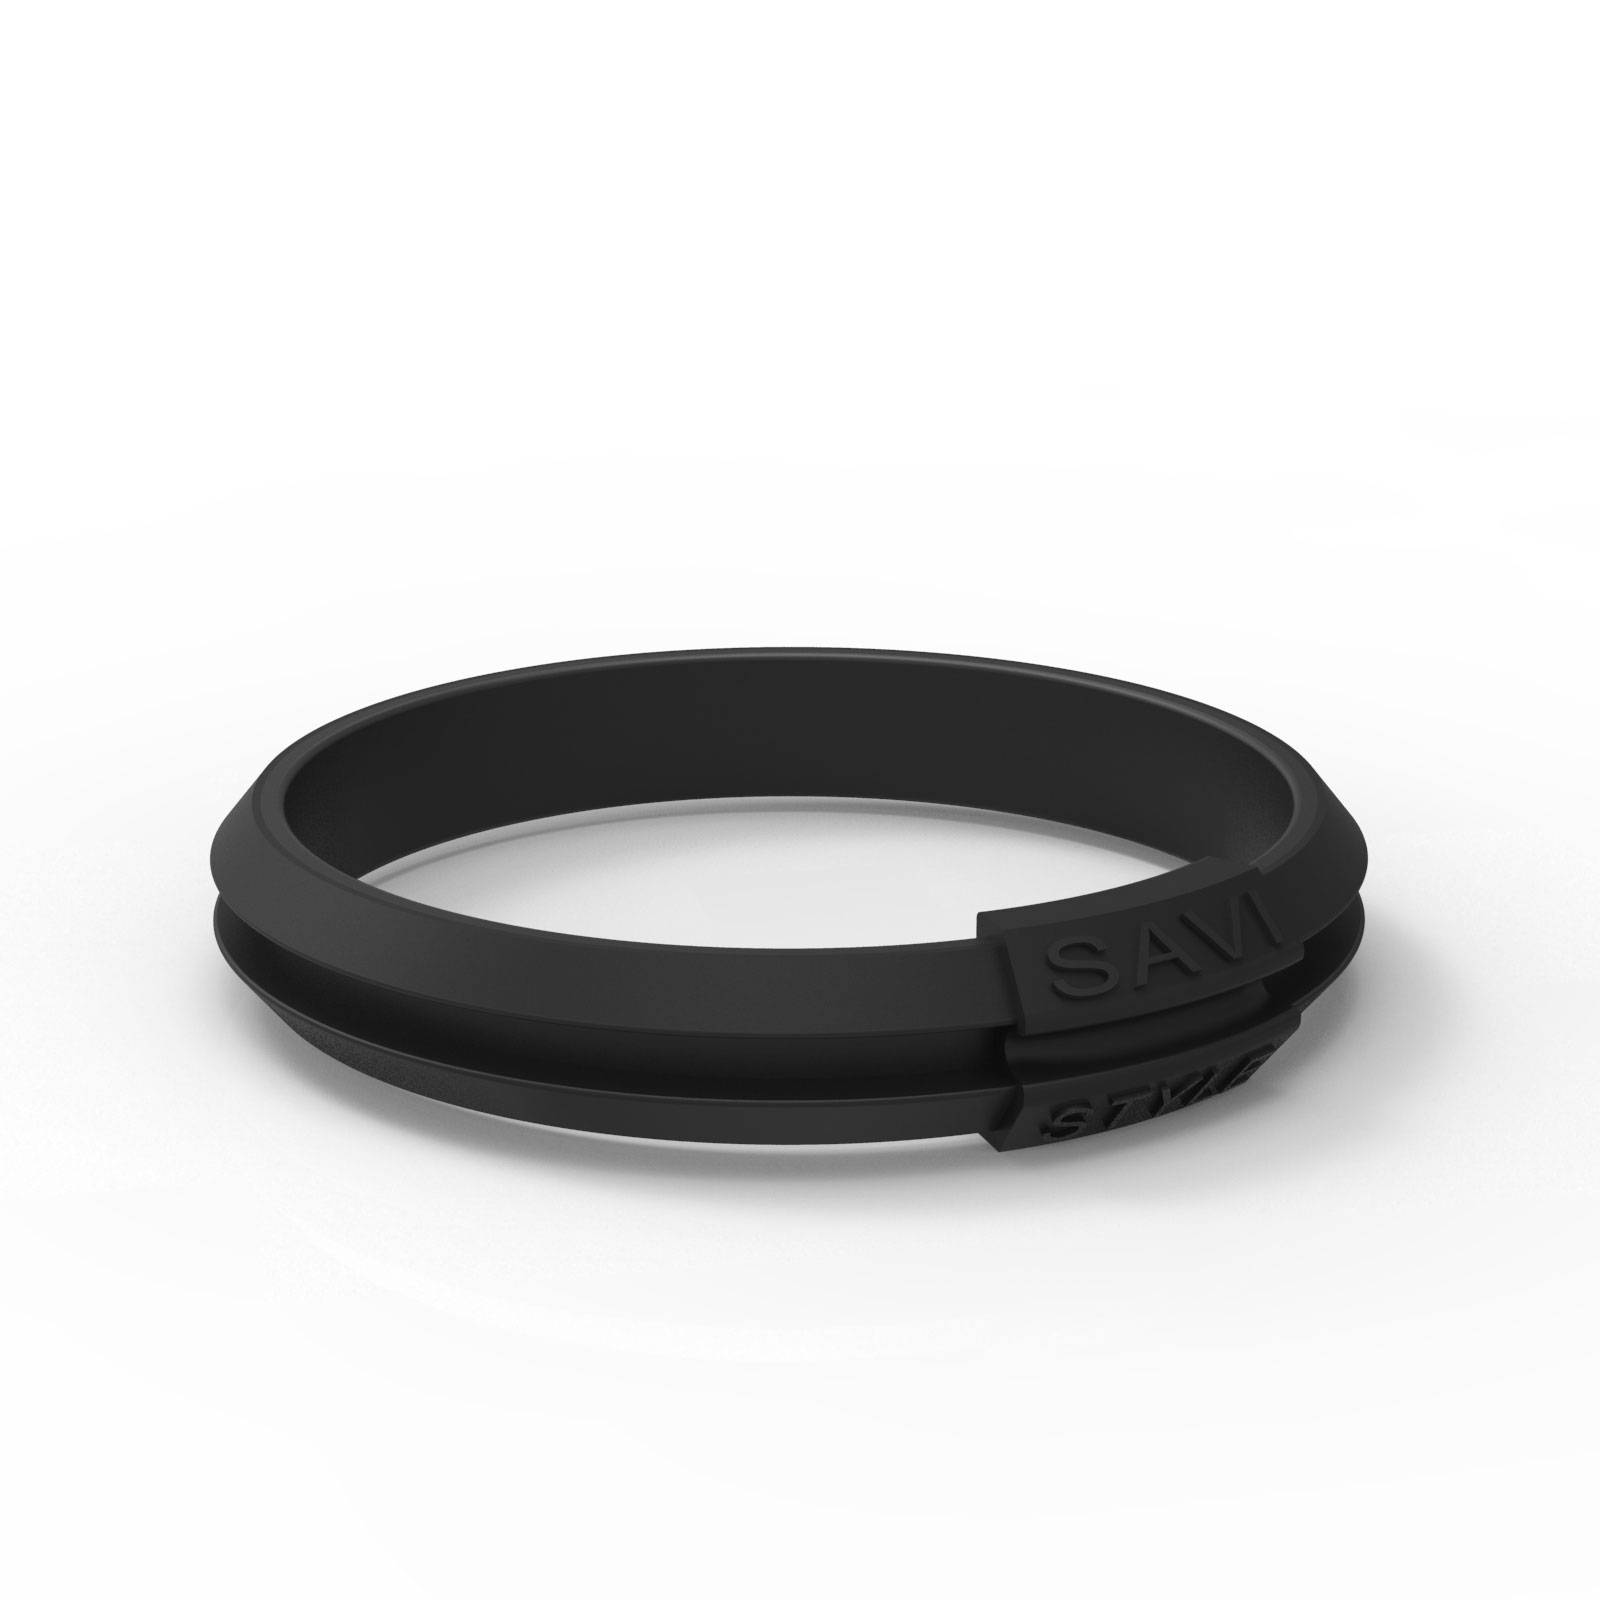 savi sleek agile black by savistyle hair tie bracelet single view